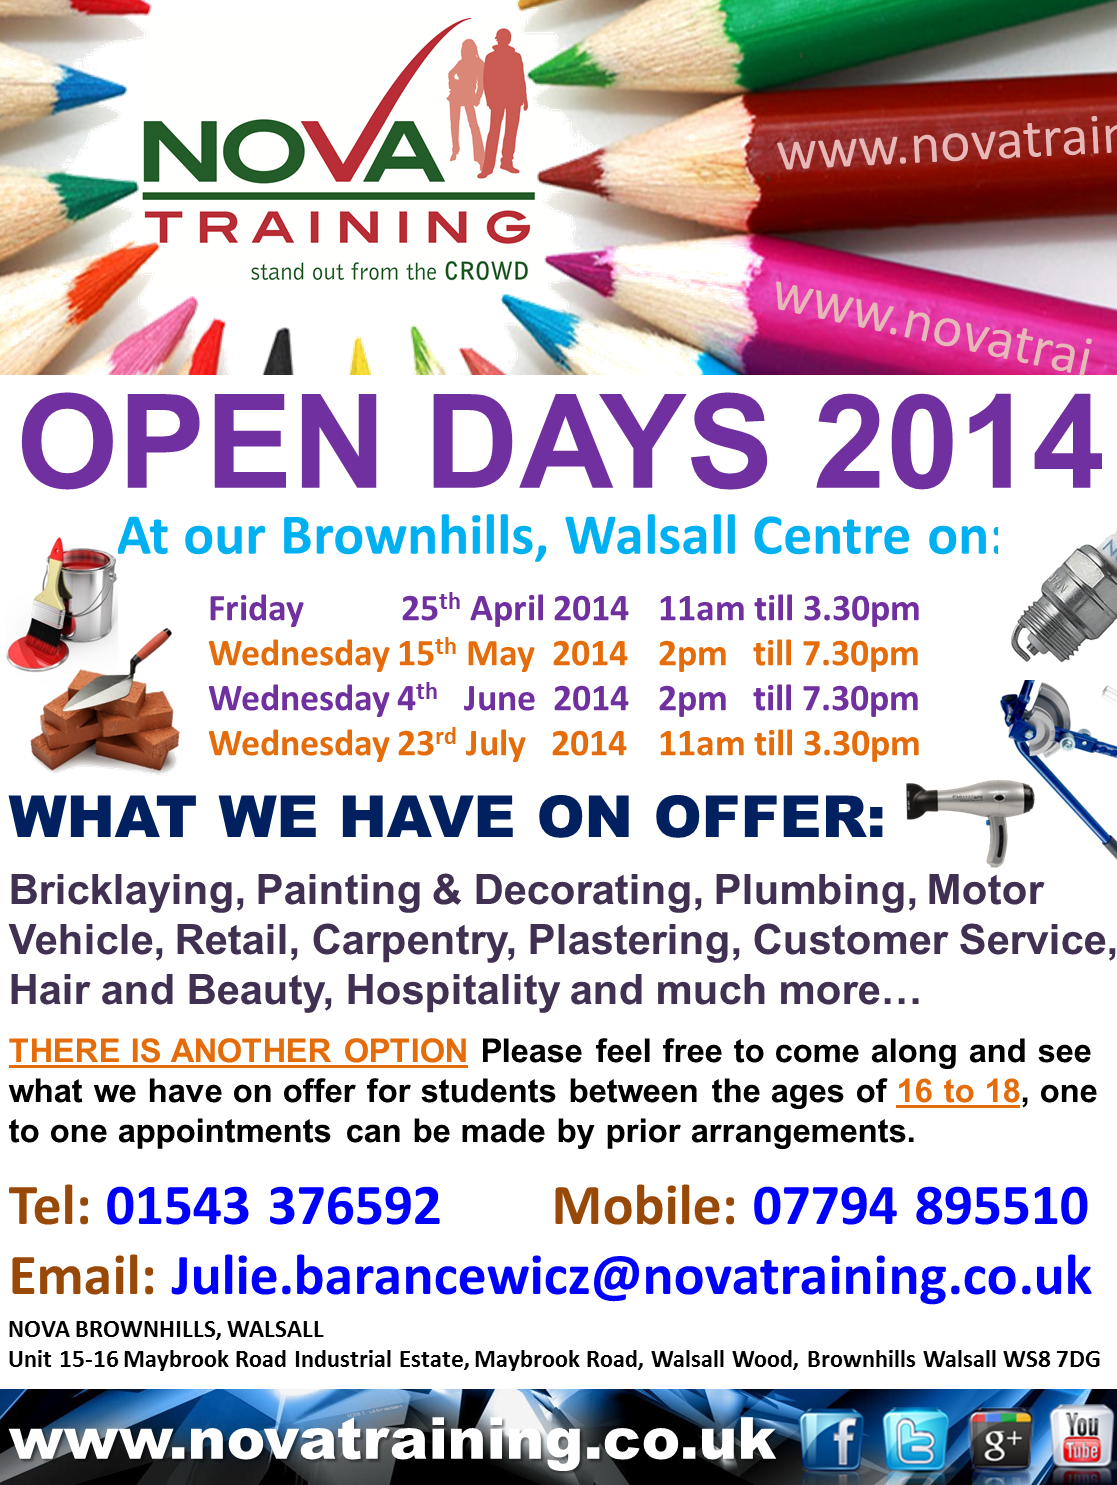 Brownhills Open Day 2014 Nova Training